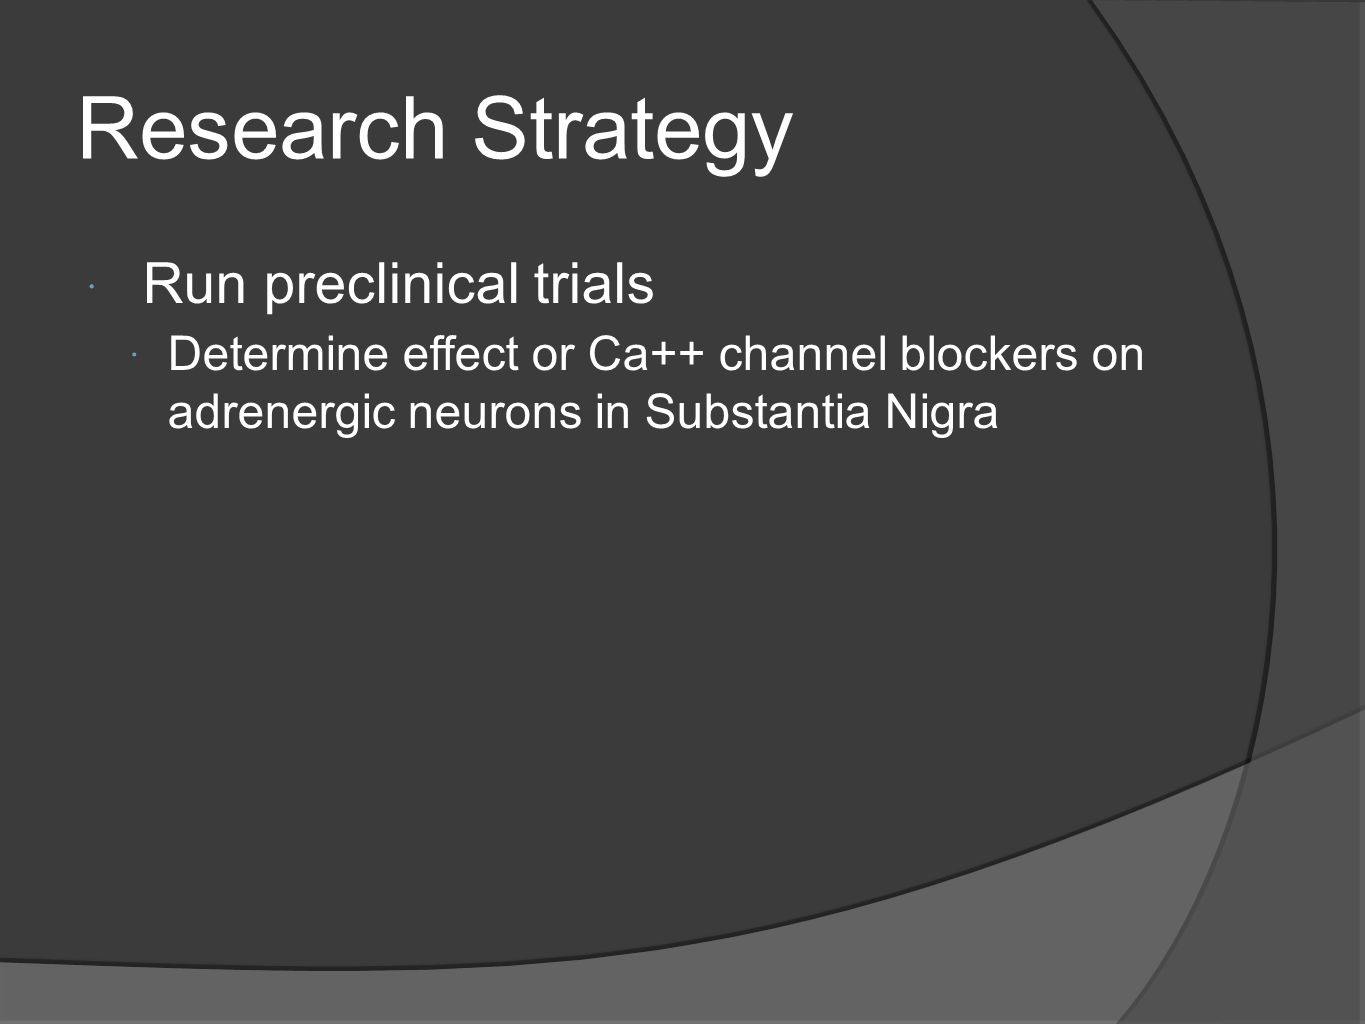 Research Strategy Run preclinical trials Determine effect or Ca++ channel blockers on adrenergic neurons in Substantia Nigra